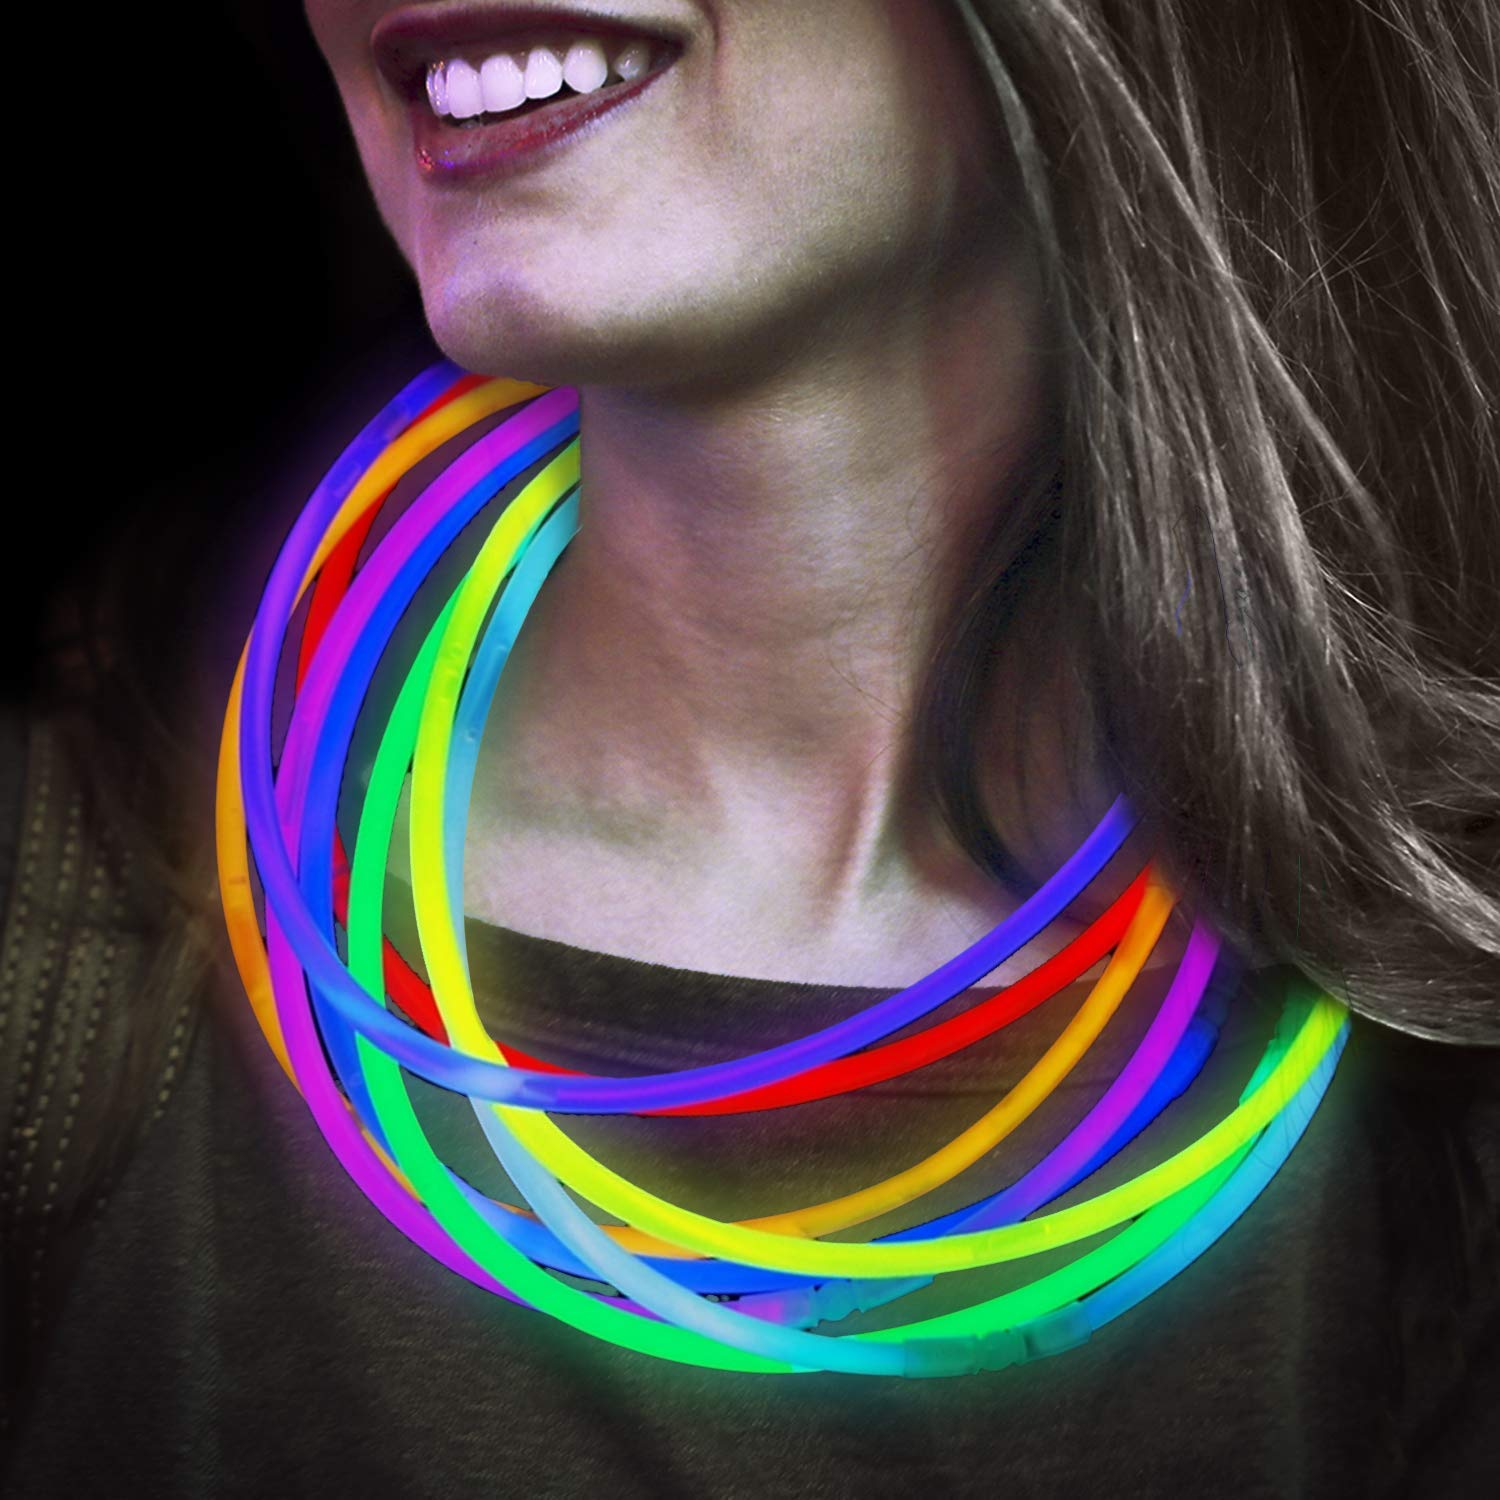 Lumistick Premium 22 Inch Glow Stick Necklaces with Connectors | Kid Safe Non-Toxic Glowstick Necklaces Party Pack | Available in Bulk and Color Varieties | Lasts 12 Hours (Color Assortment, 100) by Lumistick (Image #1)